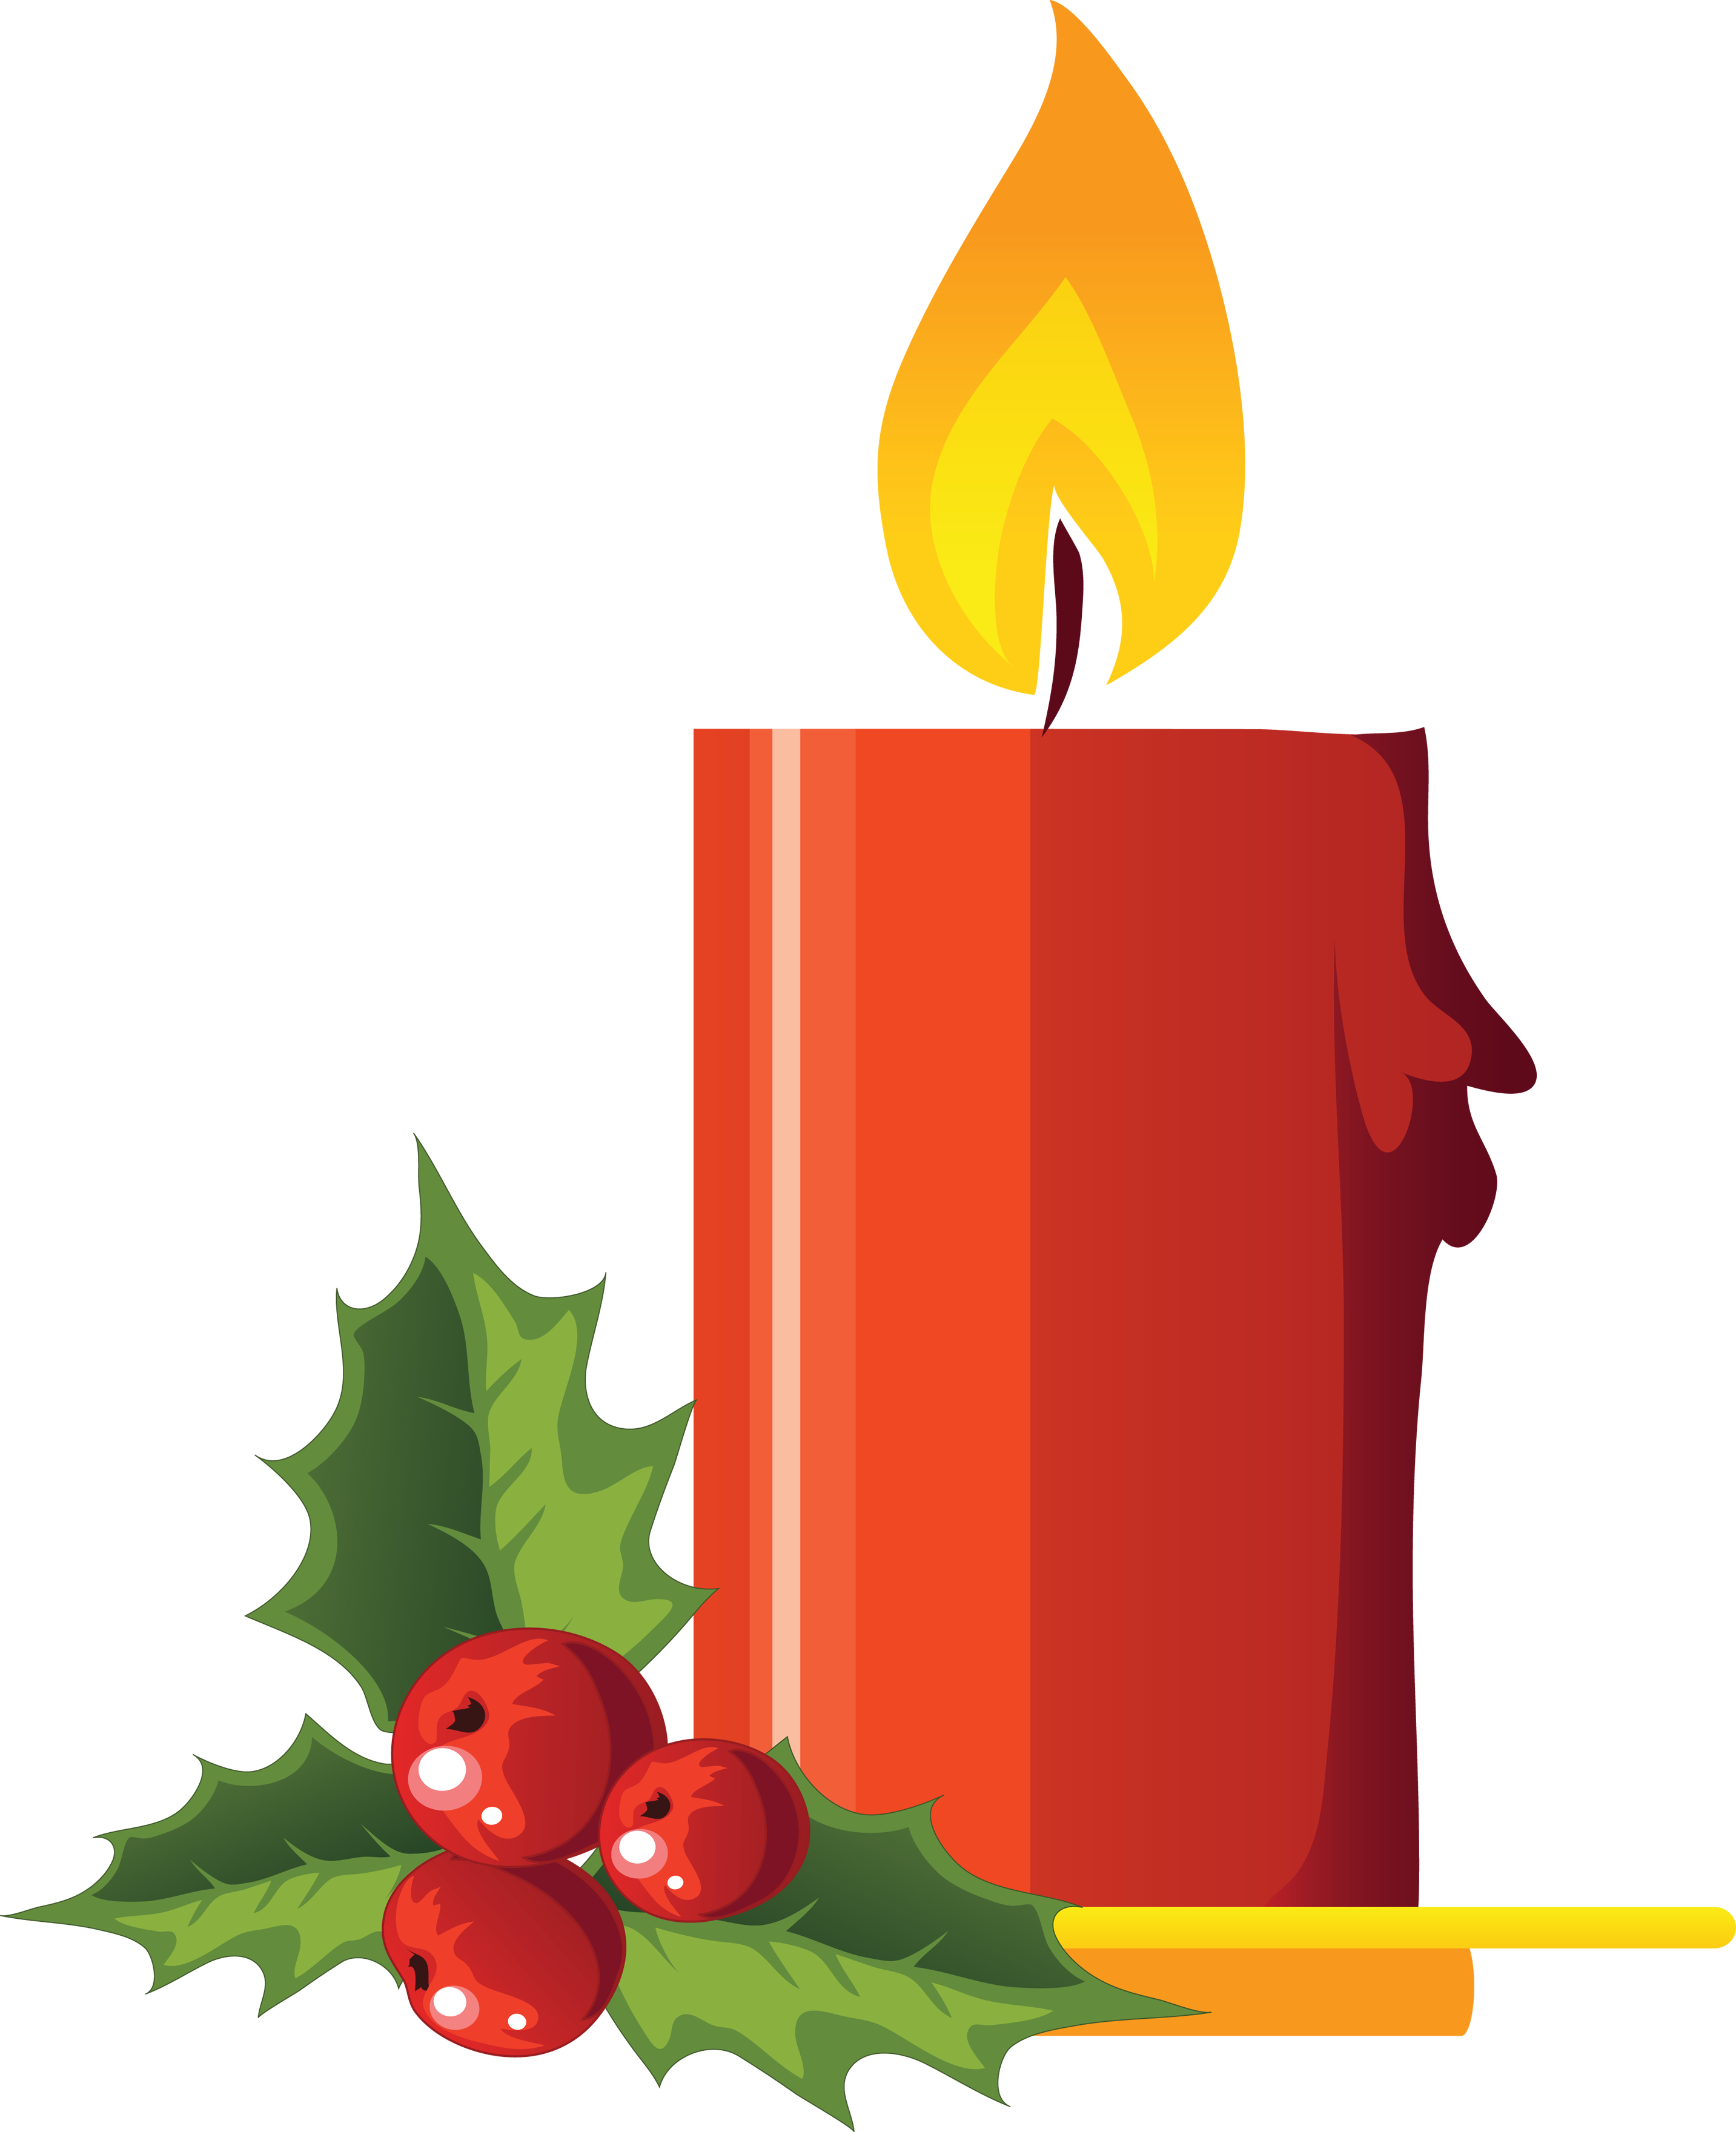 Christmas Candle S Png Image Christmas Window Painting Candles Christmas Images